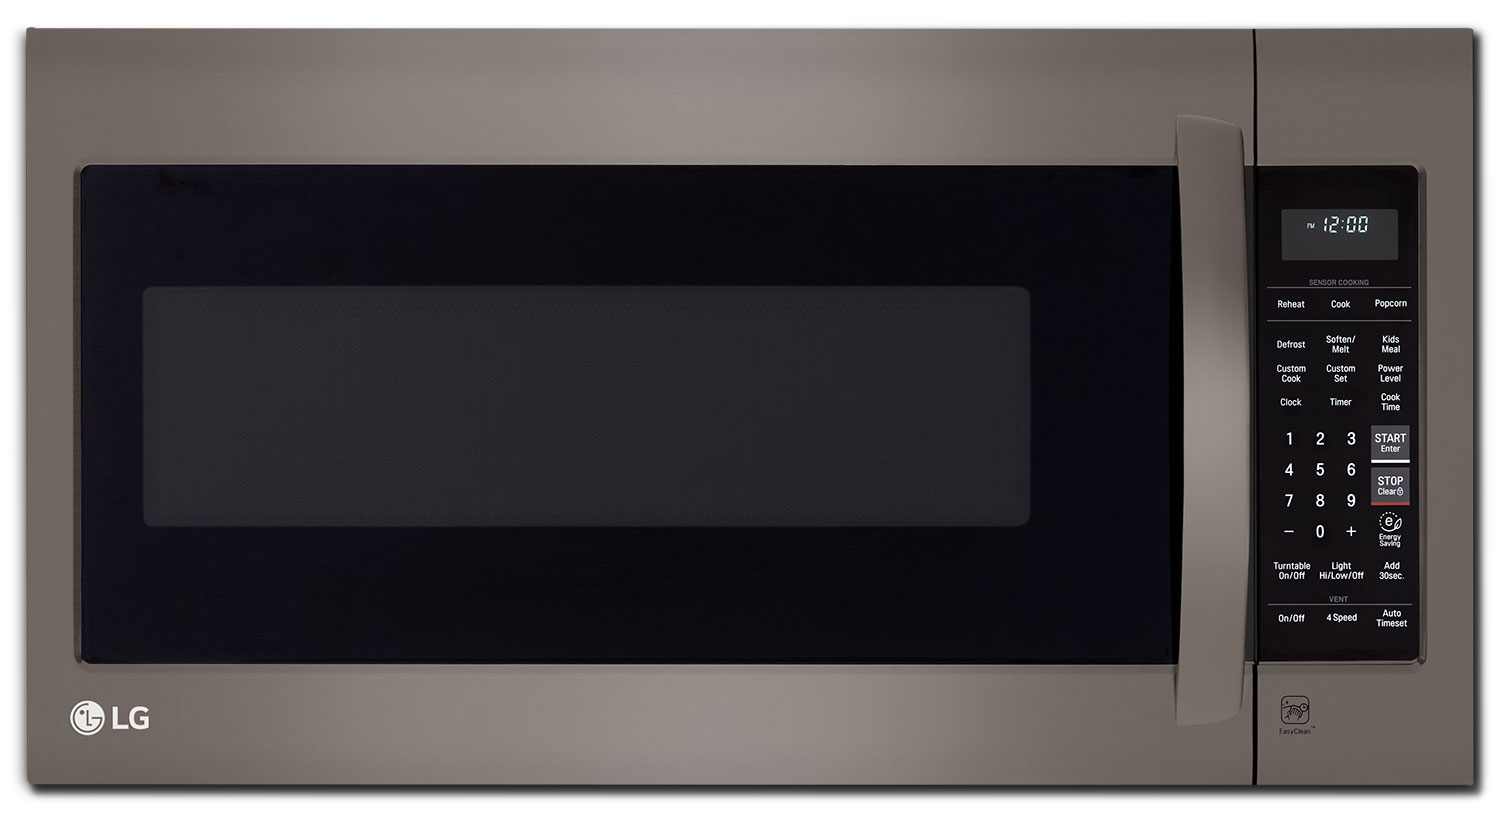 Cooking Products - LG 2.2 Cu. Ft. Over-the-Range Microwave – Black Stainless Steel LMV2257BD